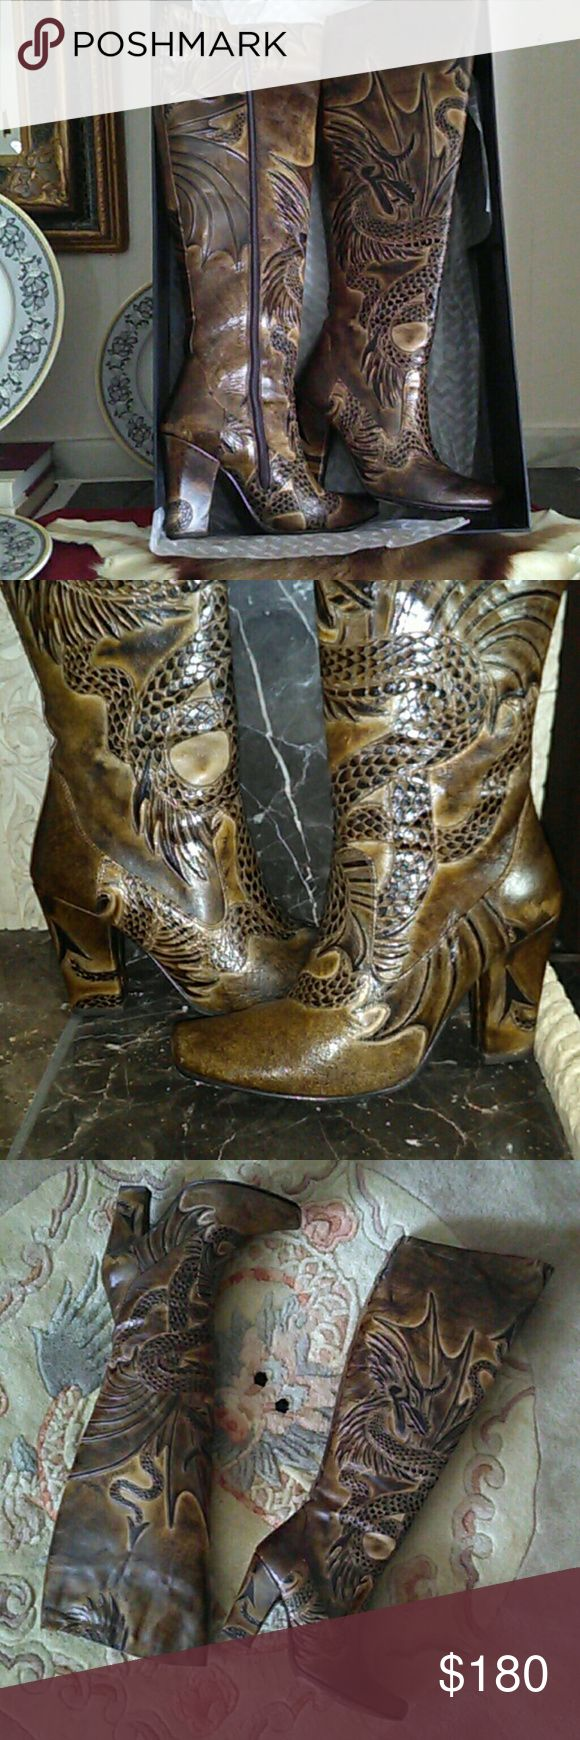 BOLO venera boots Bolo genuine  dark brown leather, hand made dragon design, model number Generator BL 8309, gorgeous  design. Used one's, still in box, not  damage caused, additional pictures if requested. BOLO Shoes Ankle Boots & Booties